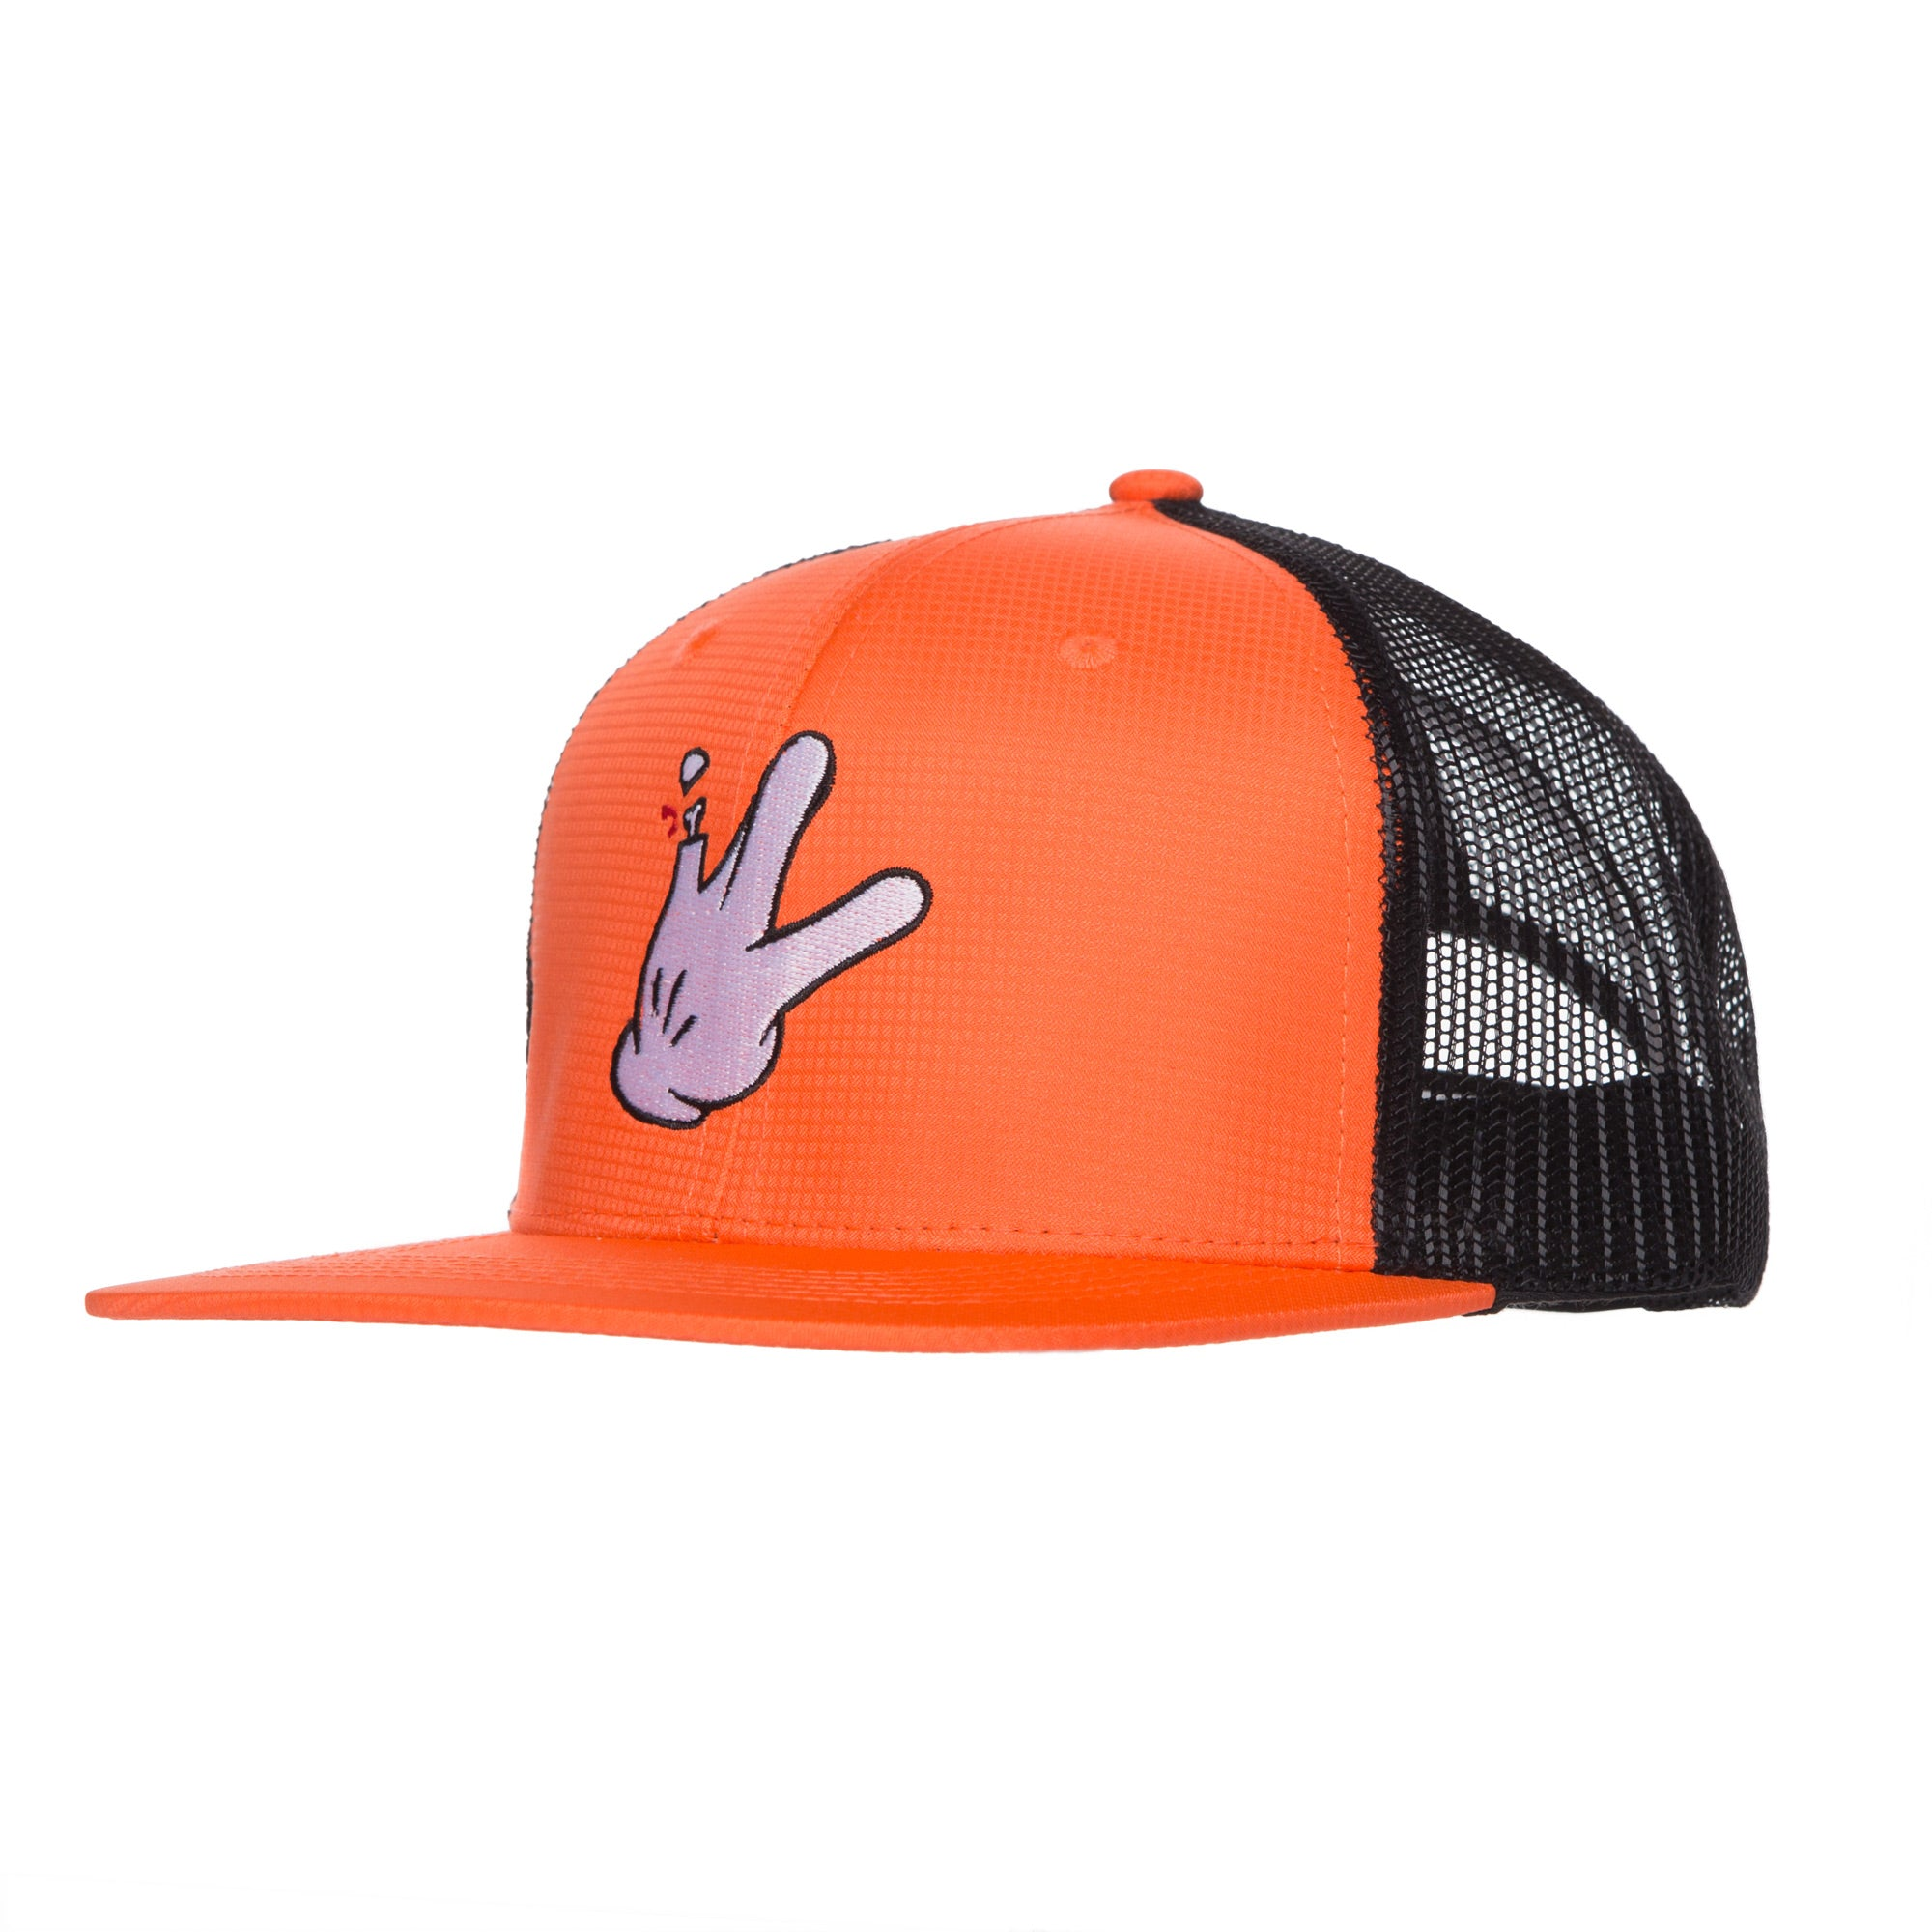 "6 Panel Micro-Fiber Orange/Black Mesh Flatbill RaceKraft ""Glove"" Trucker Hat"